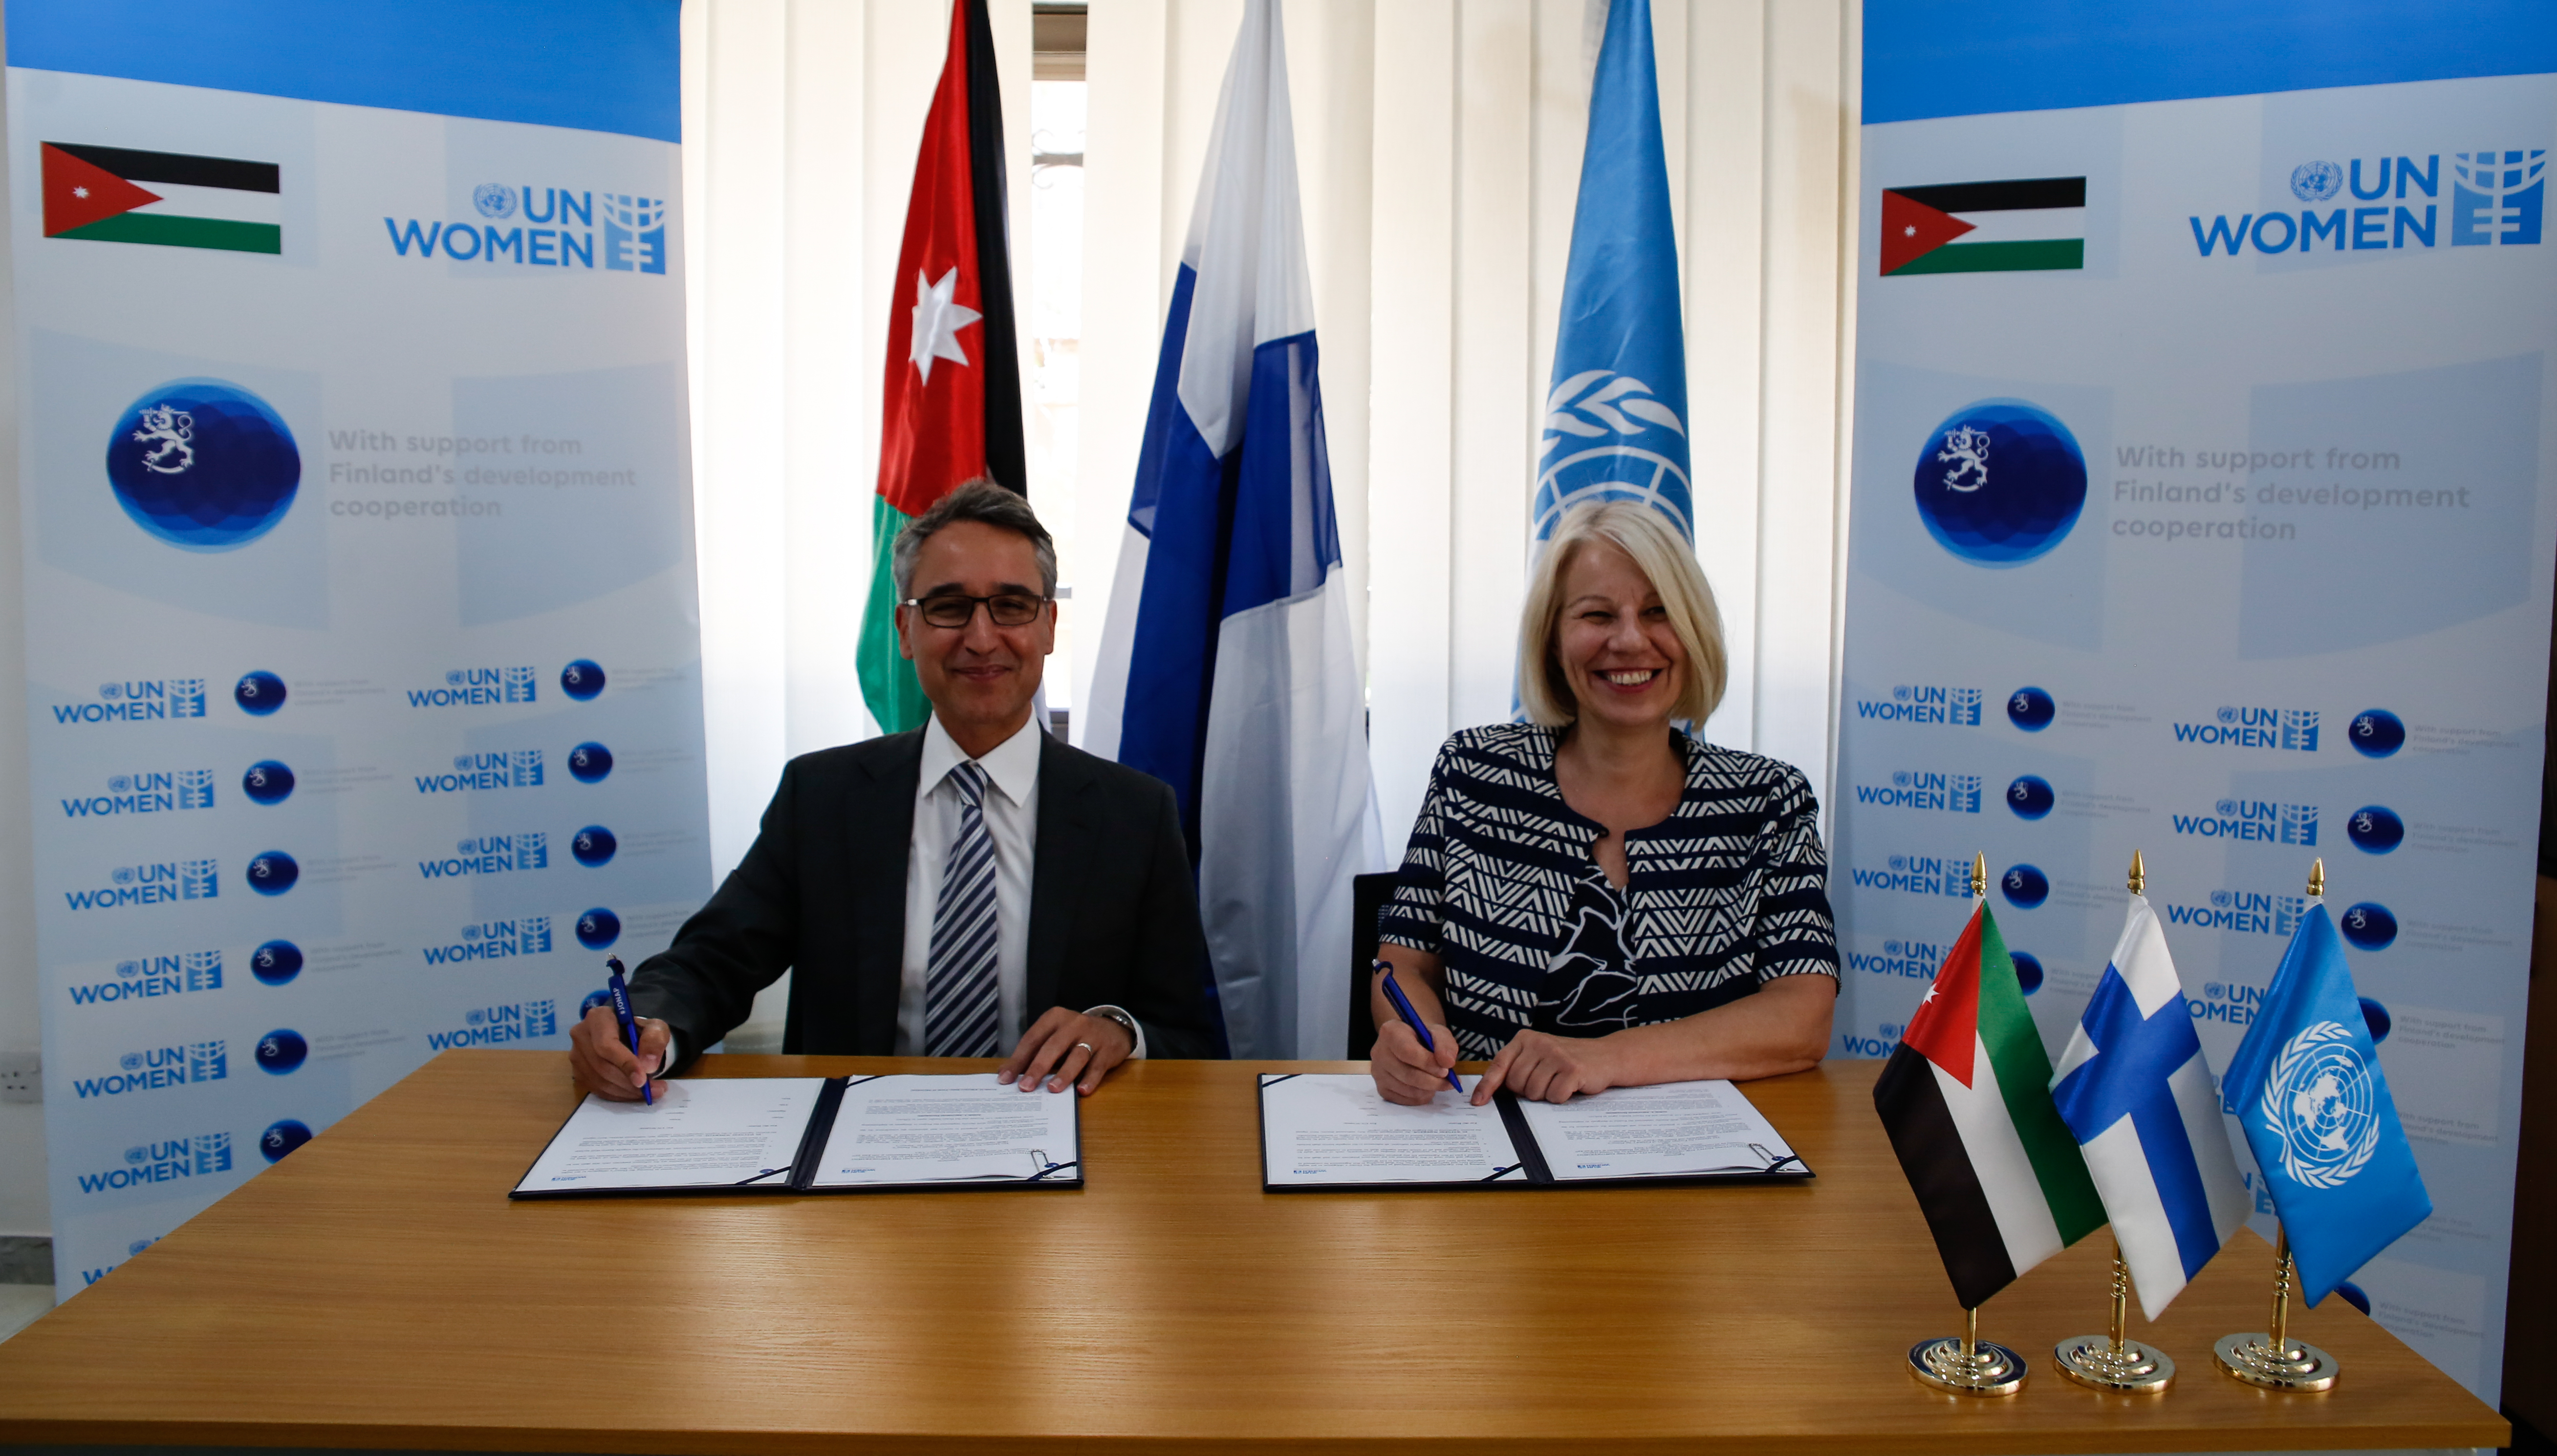 Government of Finland partners with UN Women to promote women's economic empowerment and resilience in Jordan